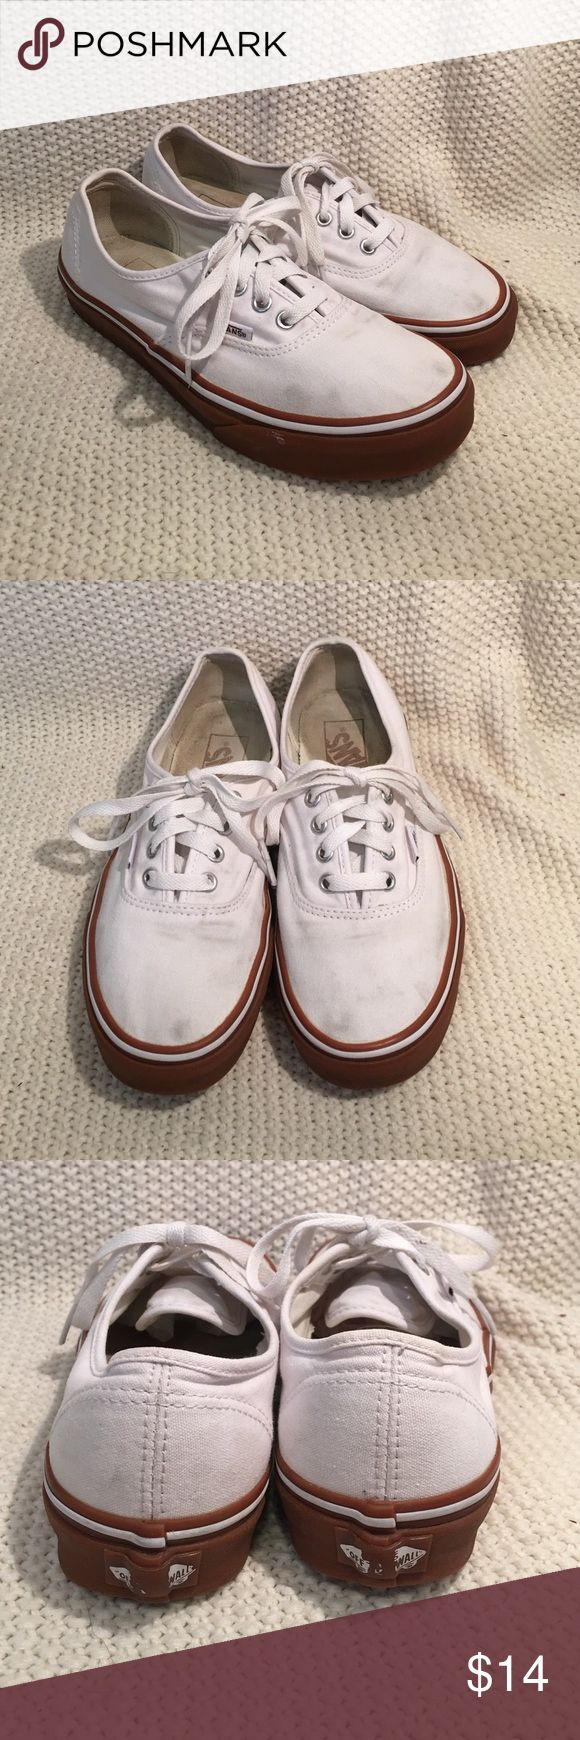 Vans Authentic Gently loved white Vans with tan soles. Little bit of dirt stains around toes as seen in pictures. Washed and cleaned. Great buy! Vans Shoes Sneakers